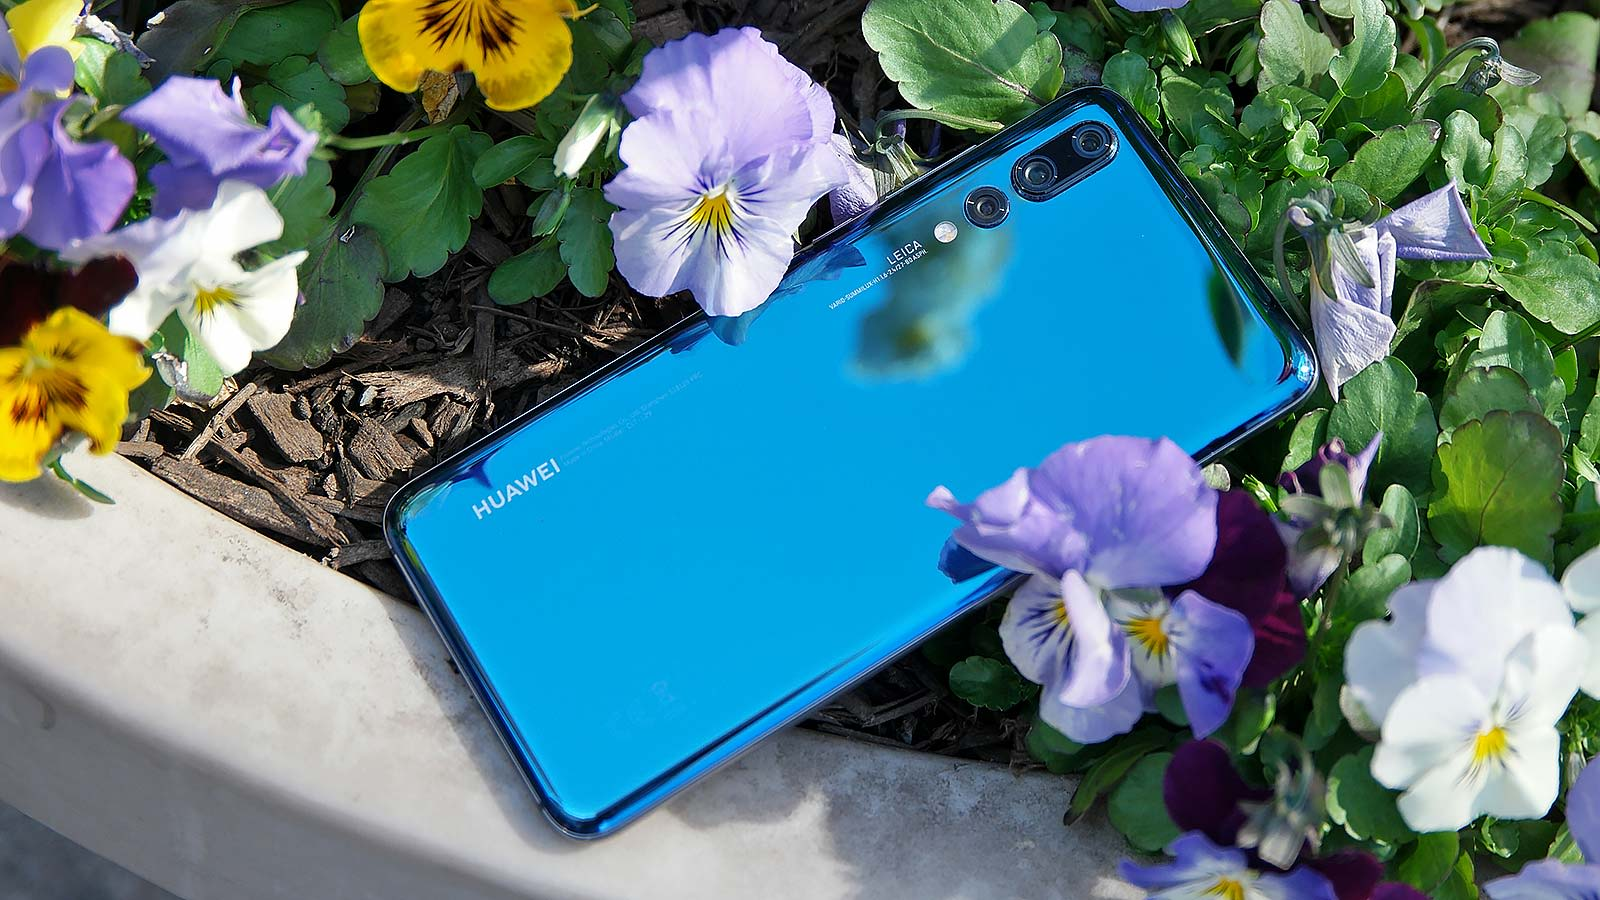 By Outselling The iPhone, Huawei Shows It Doesn't Need The US To Succeed